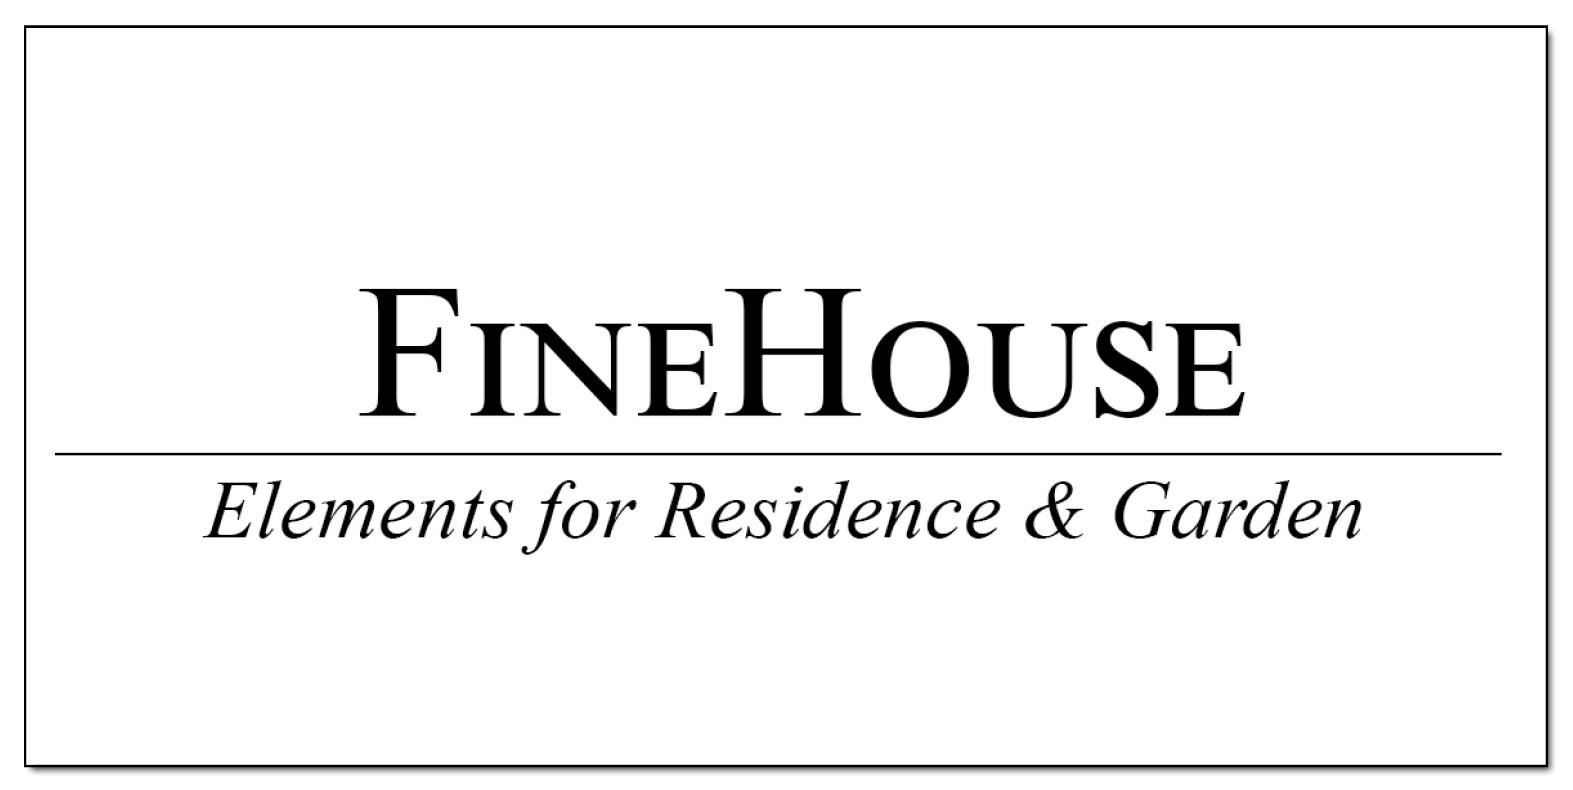 The FineHouse brand image